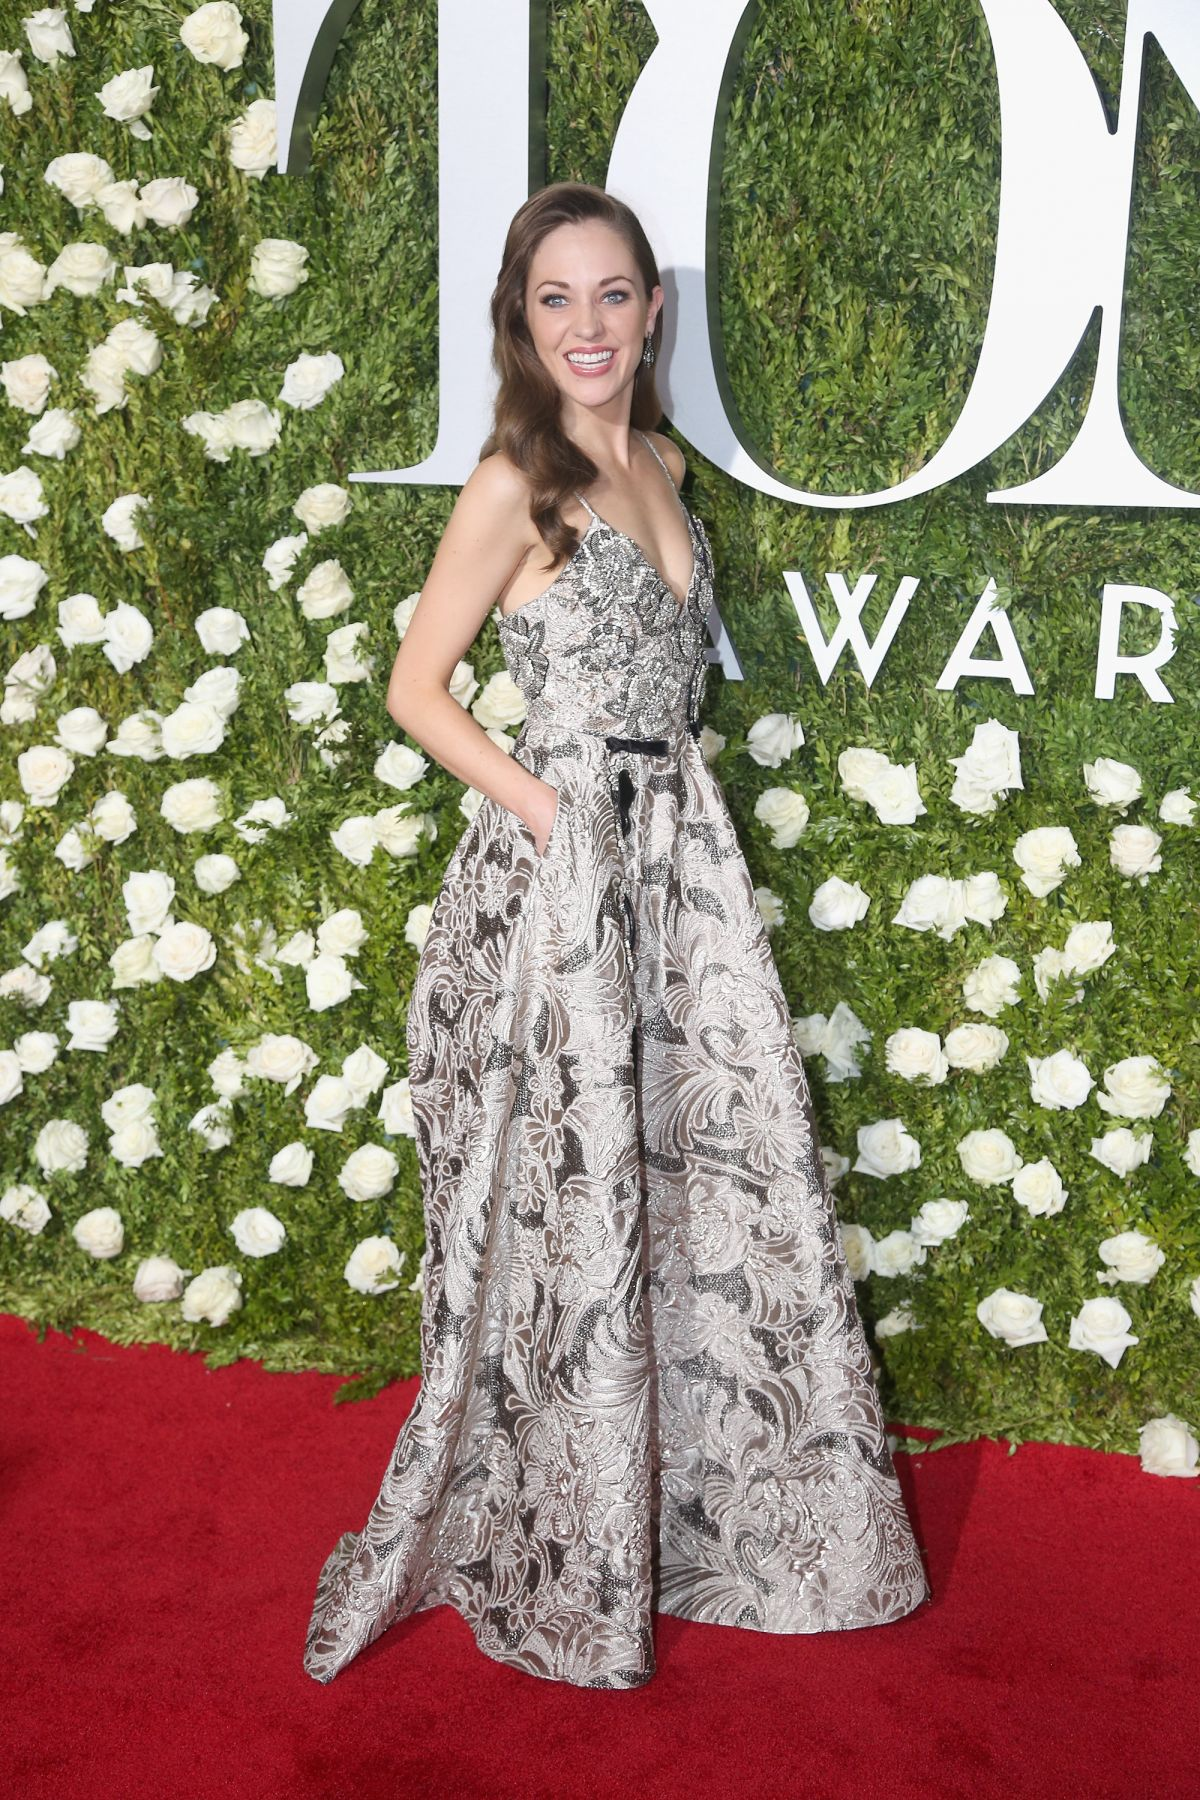 LAURA OSNES at Tony Awards 2017 in New York 06/11/2017